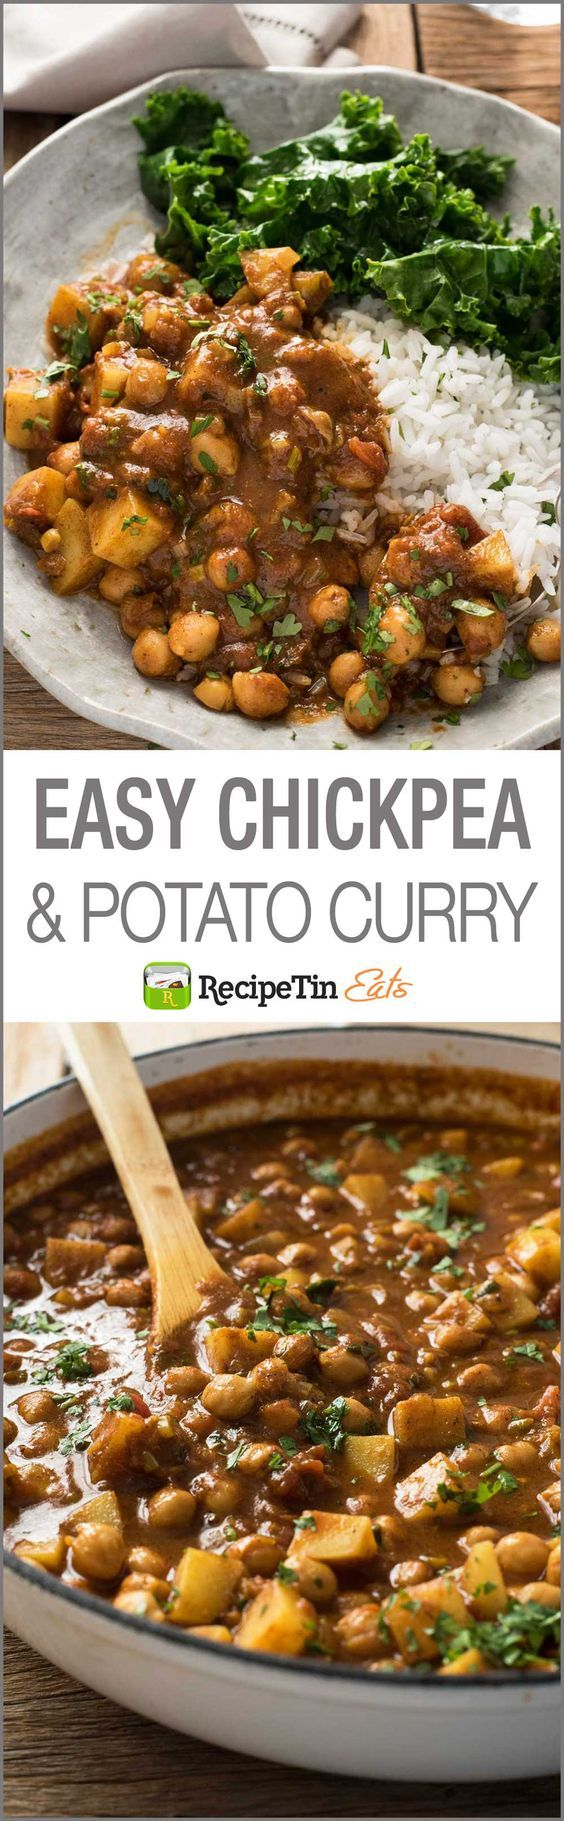 Chickpea Potato Curry - an authentic recipe that's so easy, made from ...